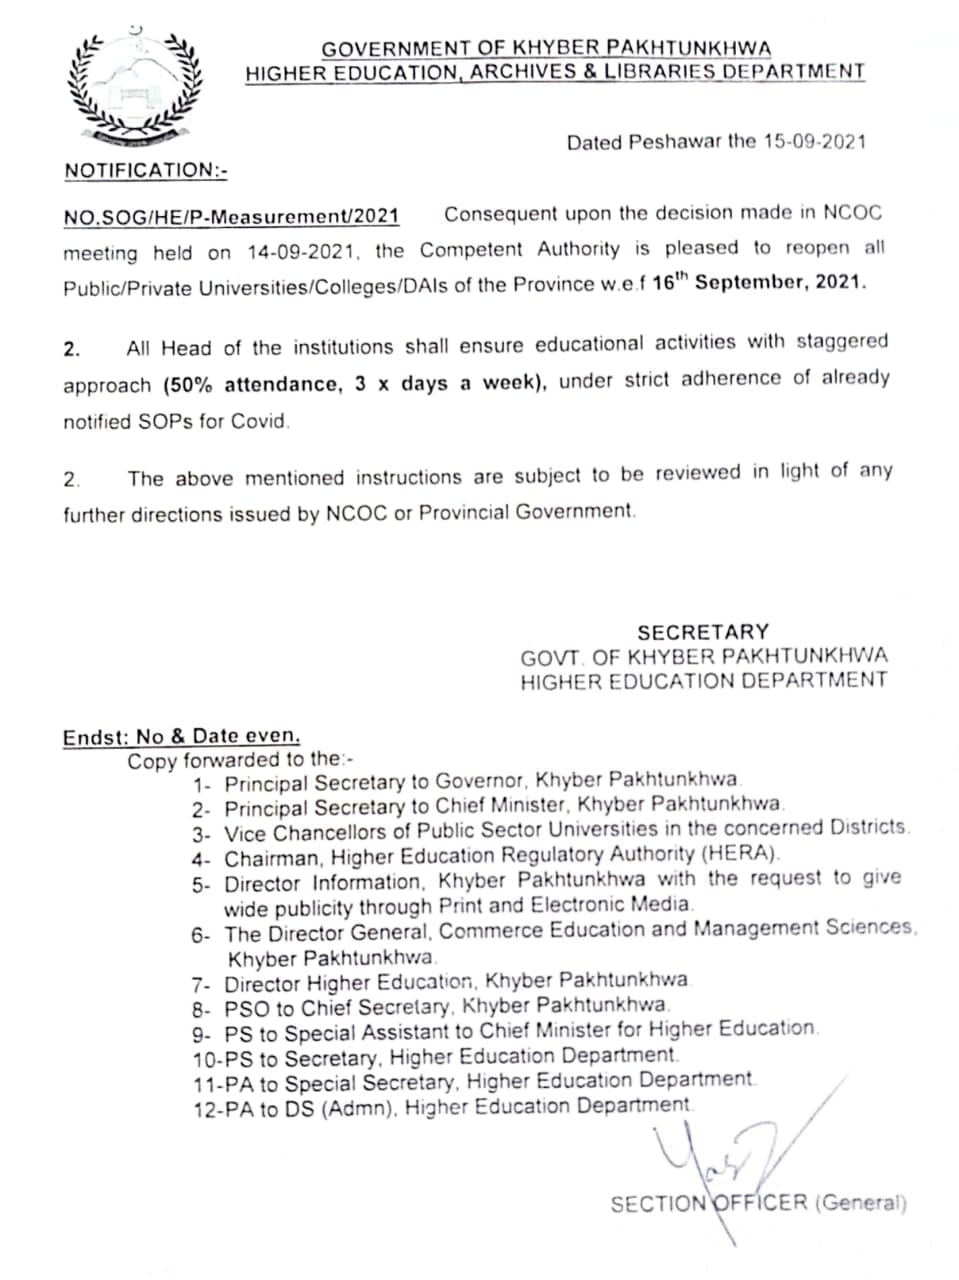 Notification of Re-Opening All Colleges Universities